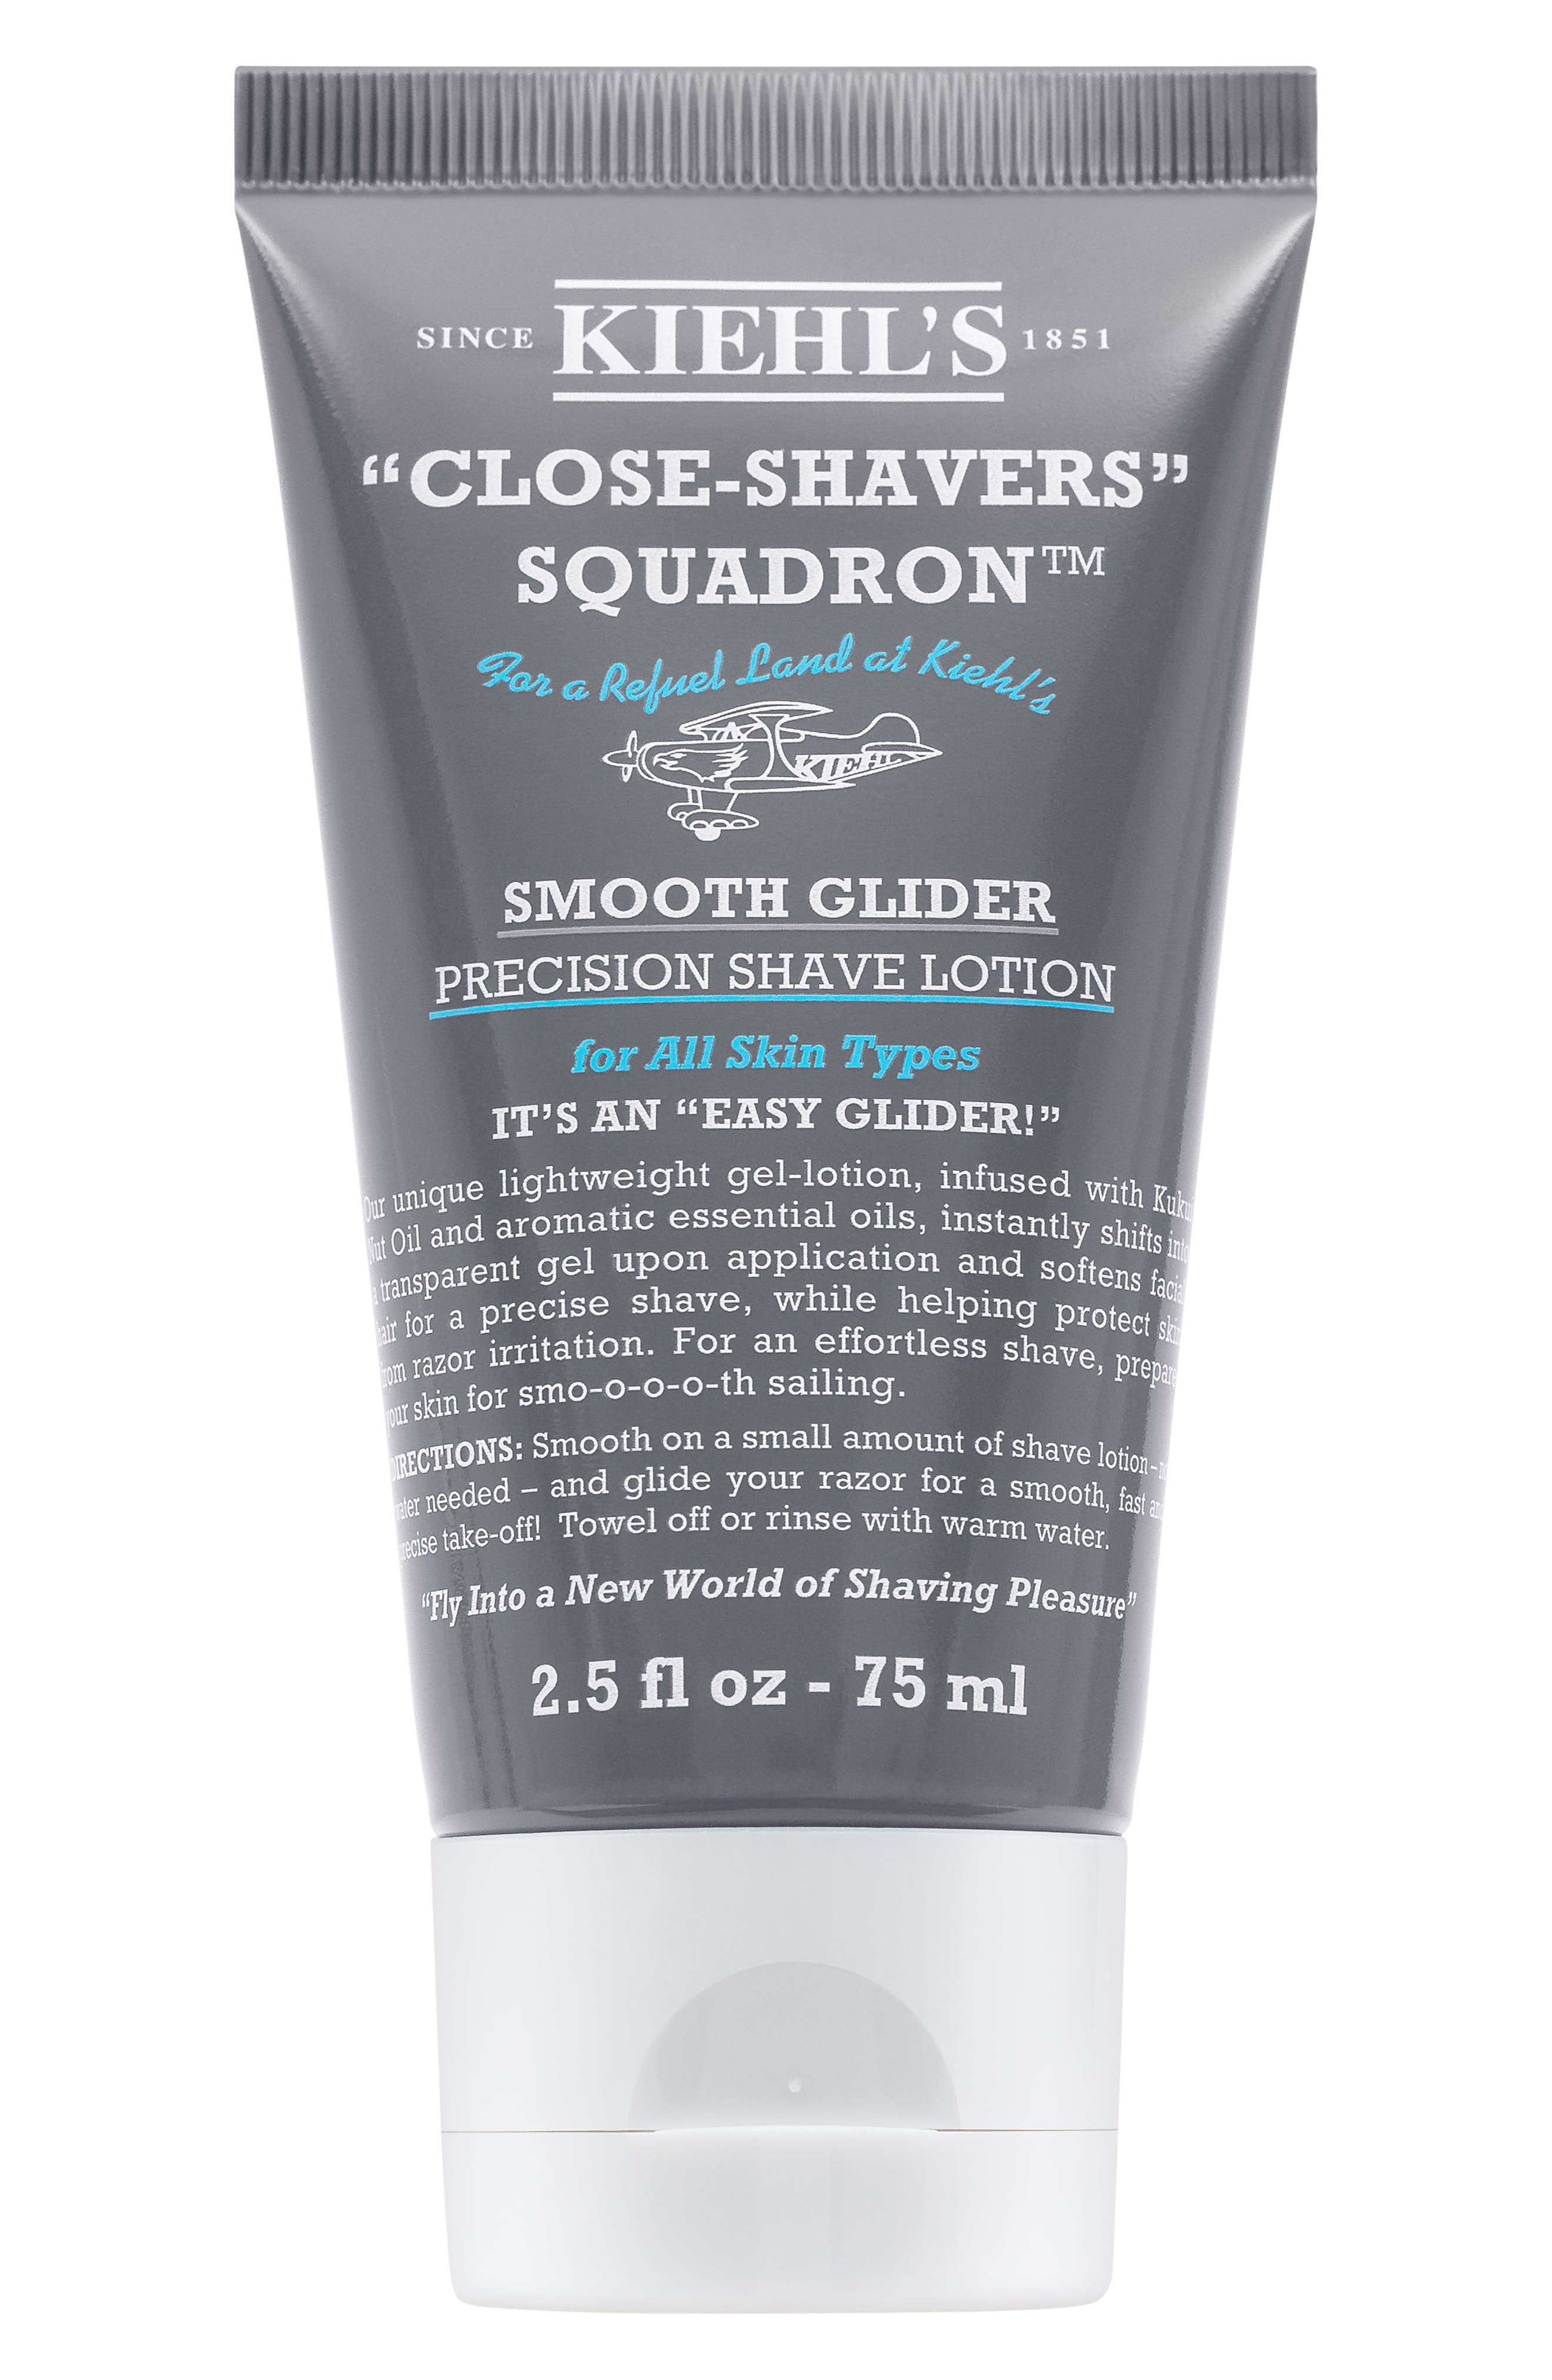 Kiehl's Since 1851 Smooth Glider Precision Shave Lotion